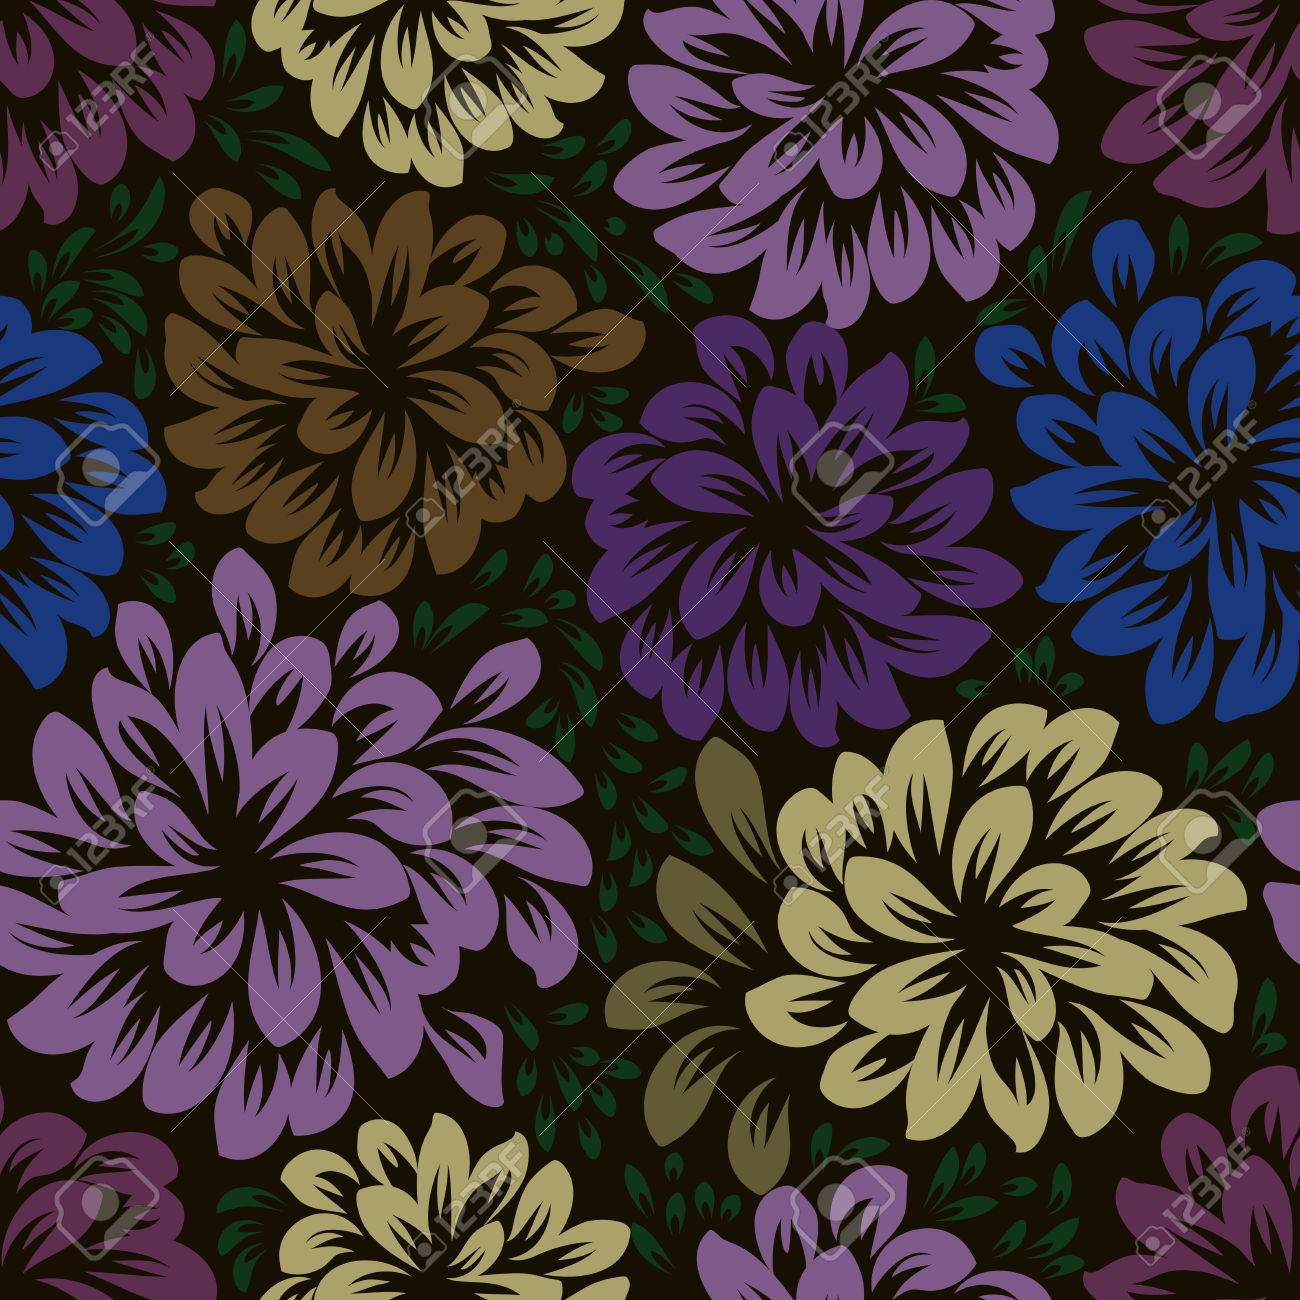 Color Dark Seamless Floral Wallpaper Pattern Vector Template Royalty Free Cliparts Vectors And Stock Illustration Image 64615090